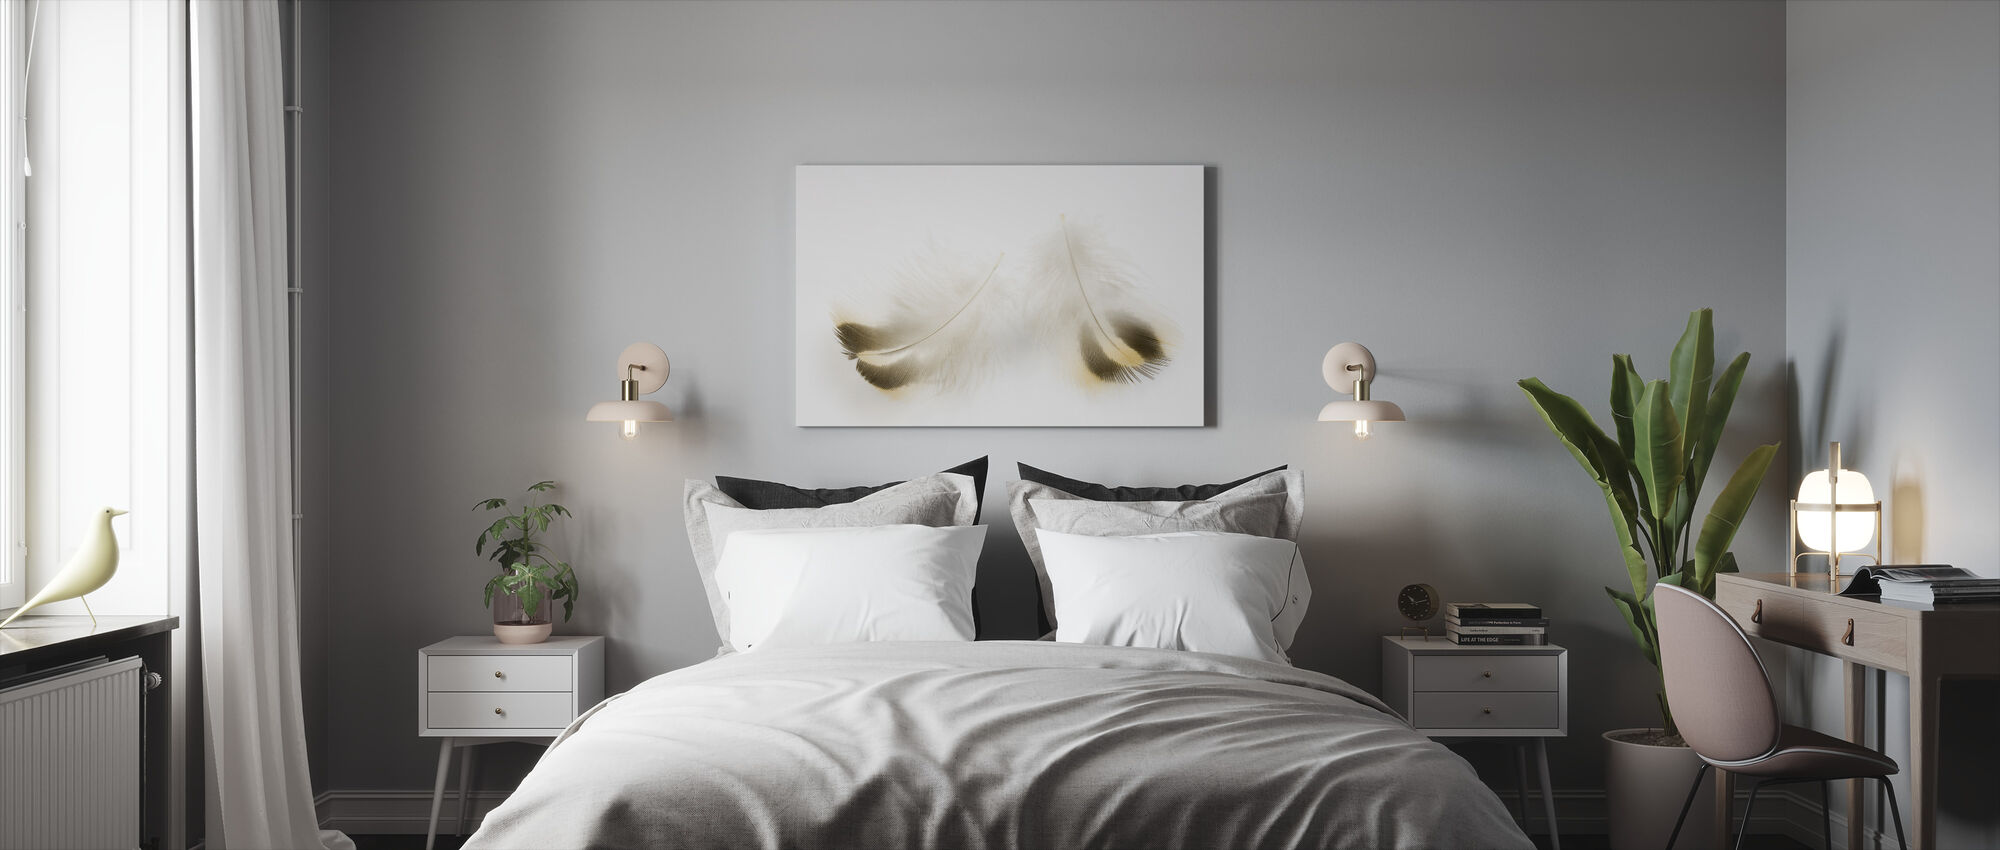 Pair of Feathers - Canvas print - Bedroom